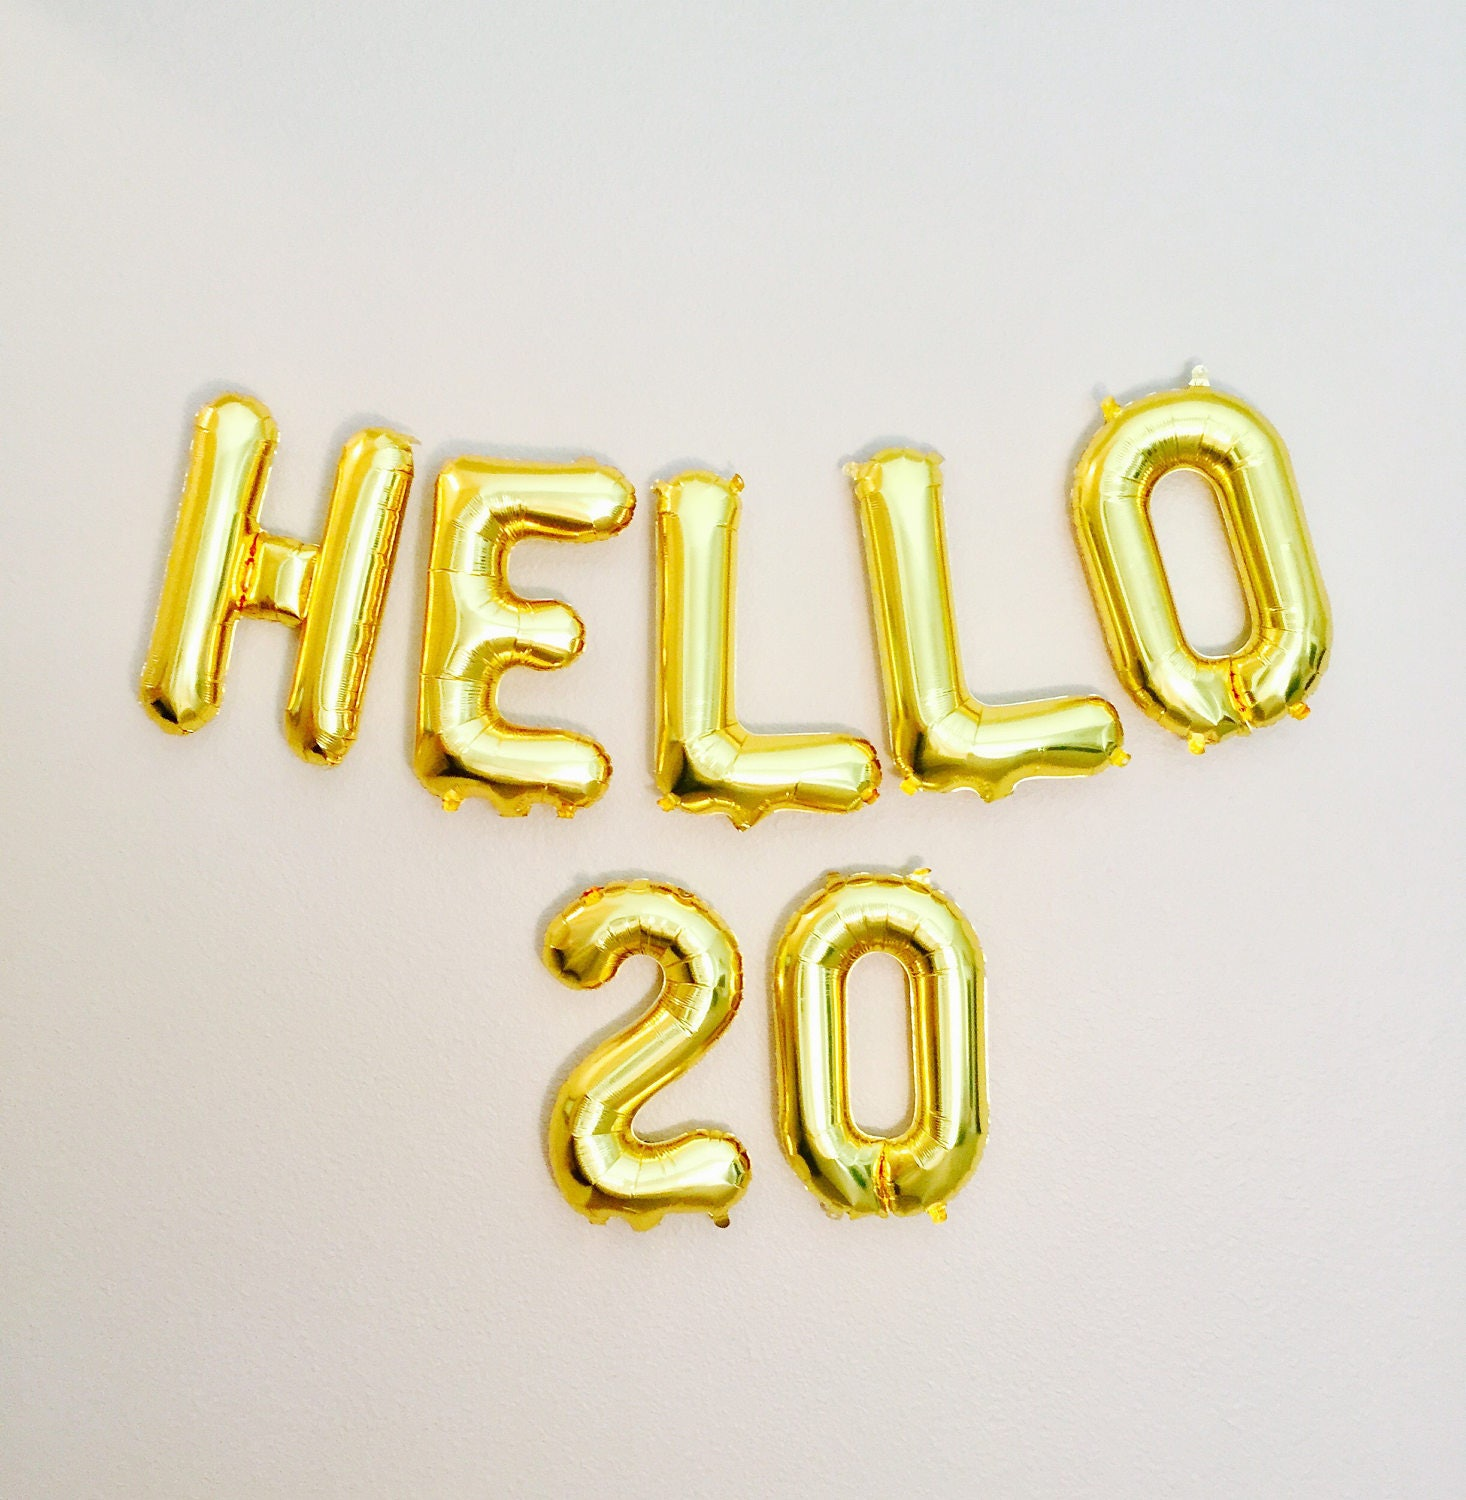 Happy Birthday 20th Quotes: HELLO 20 Balloons 20th Birthday 20th Anniversary 20